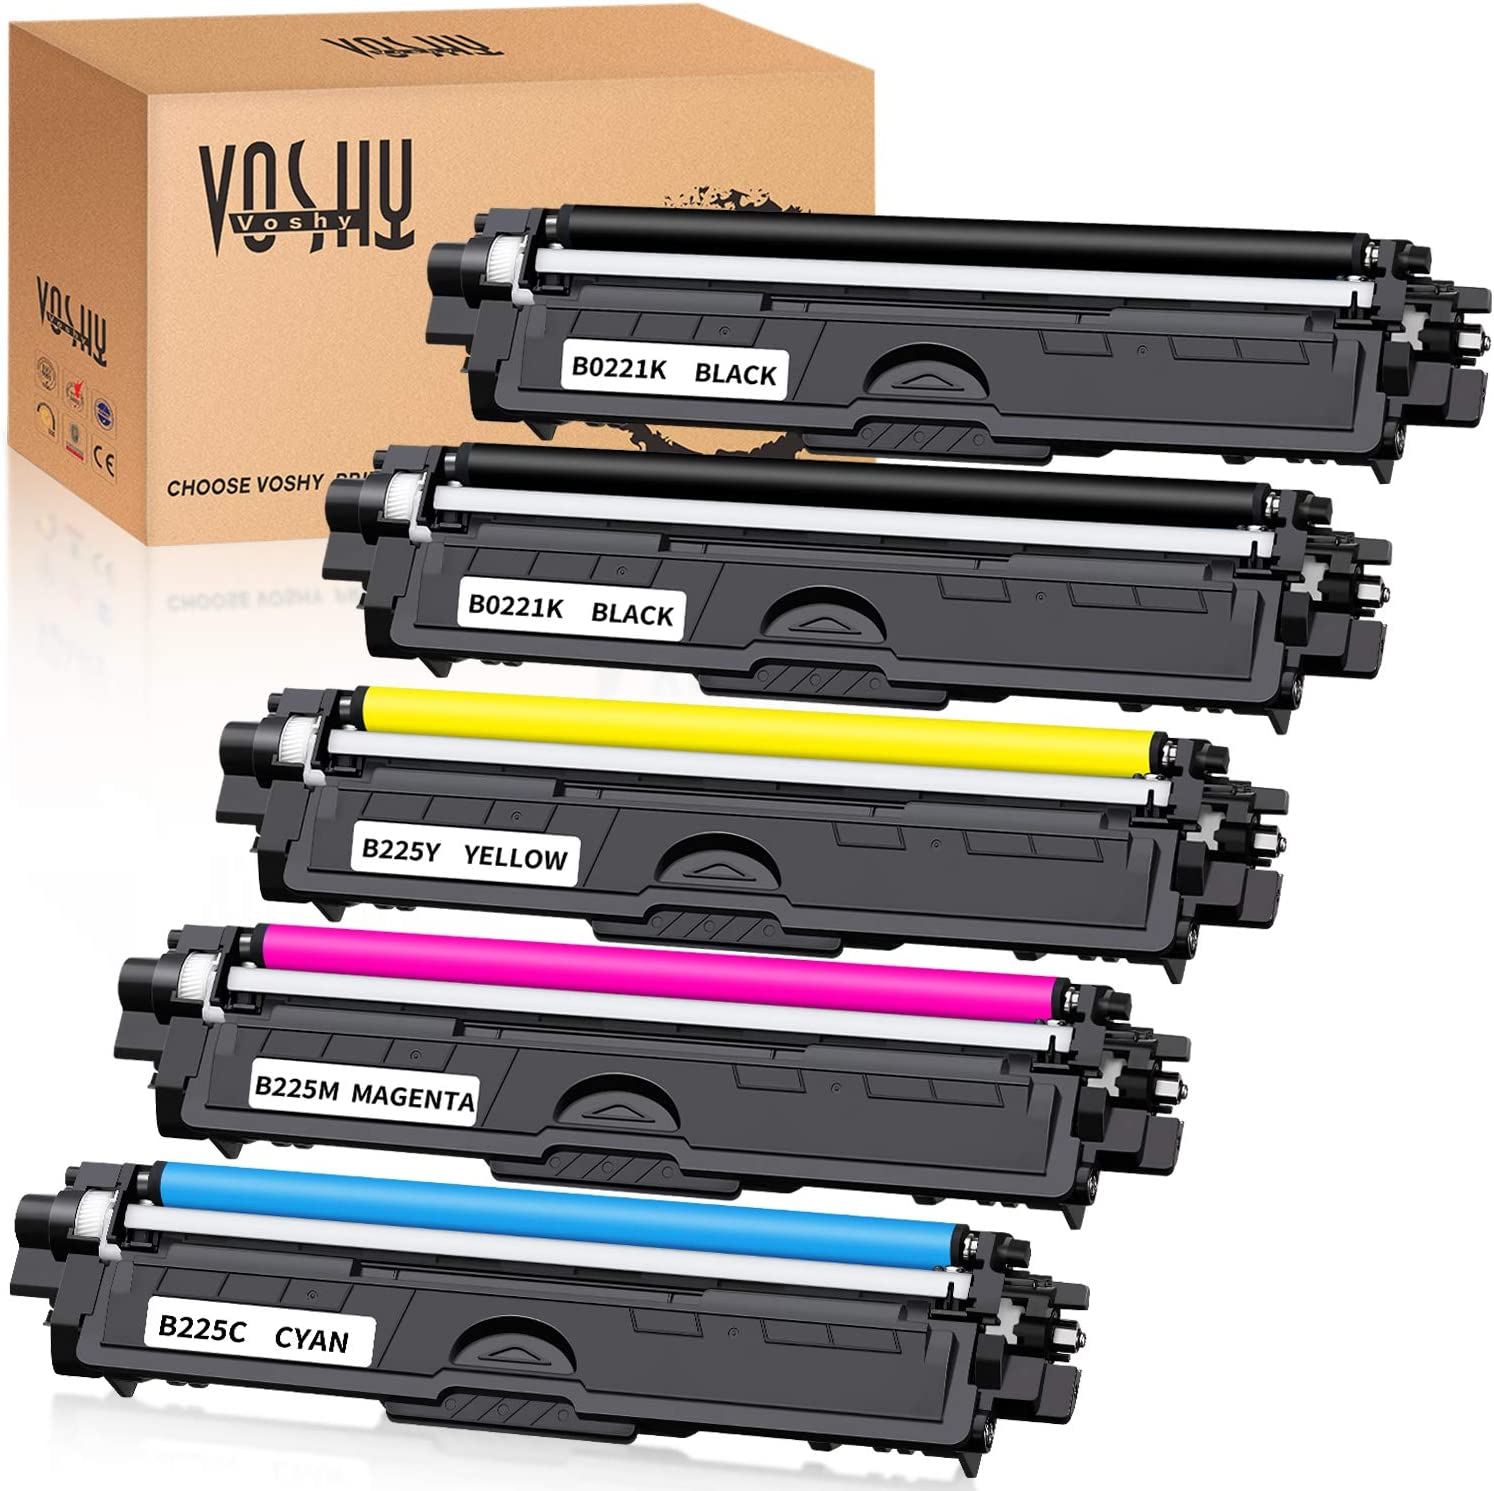 Voshy Compatible Toner Cartridge Replacement for TN221 TN225 TN-221 TN-225 Used to HL-3170CDW MFC-9130CW MFC-9340CDW MFC-9330CDW HL-3140CW HL-3180CDW HL-3150CDW DCP-9020CDN MFC-9140CDN Printer, 5-Pack